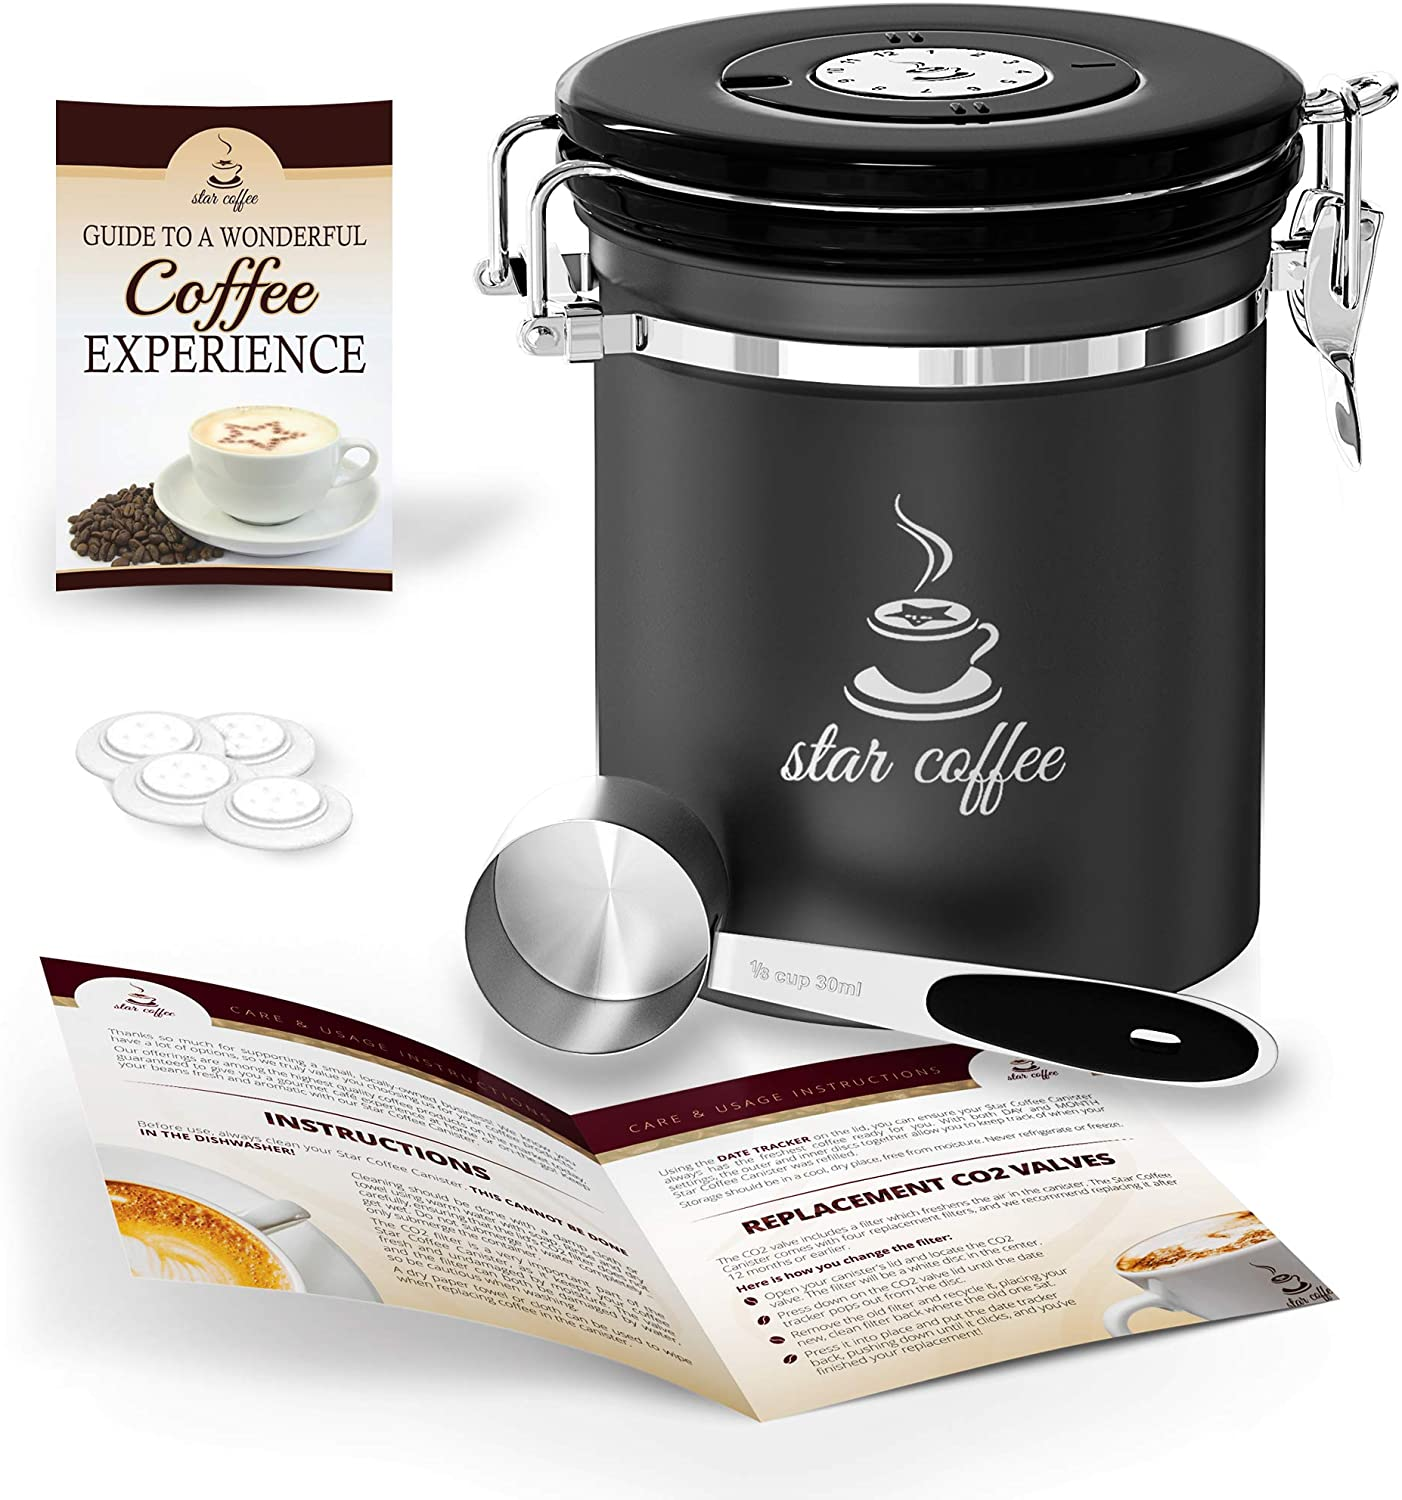 Star Coffee Container Airtight Coffee Storage - Stainless Steel Canister with Measuring Scoop for Beans or Ground Coffee, 5 CO2 Valve Filters, Freshness Calendar, eBook, Medium Coffee Holder 16oz